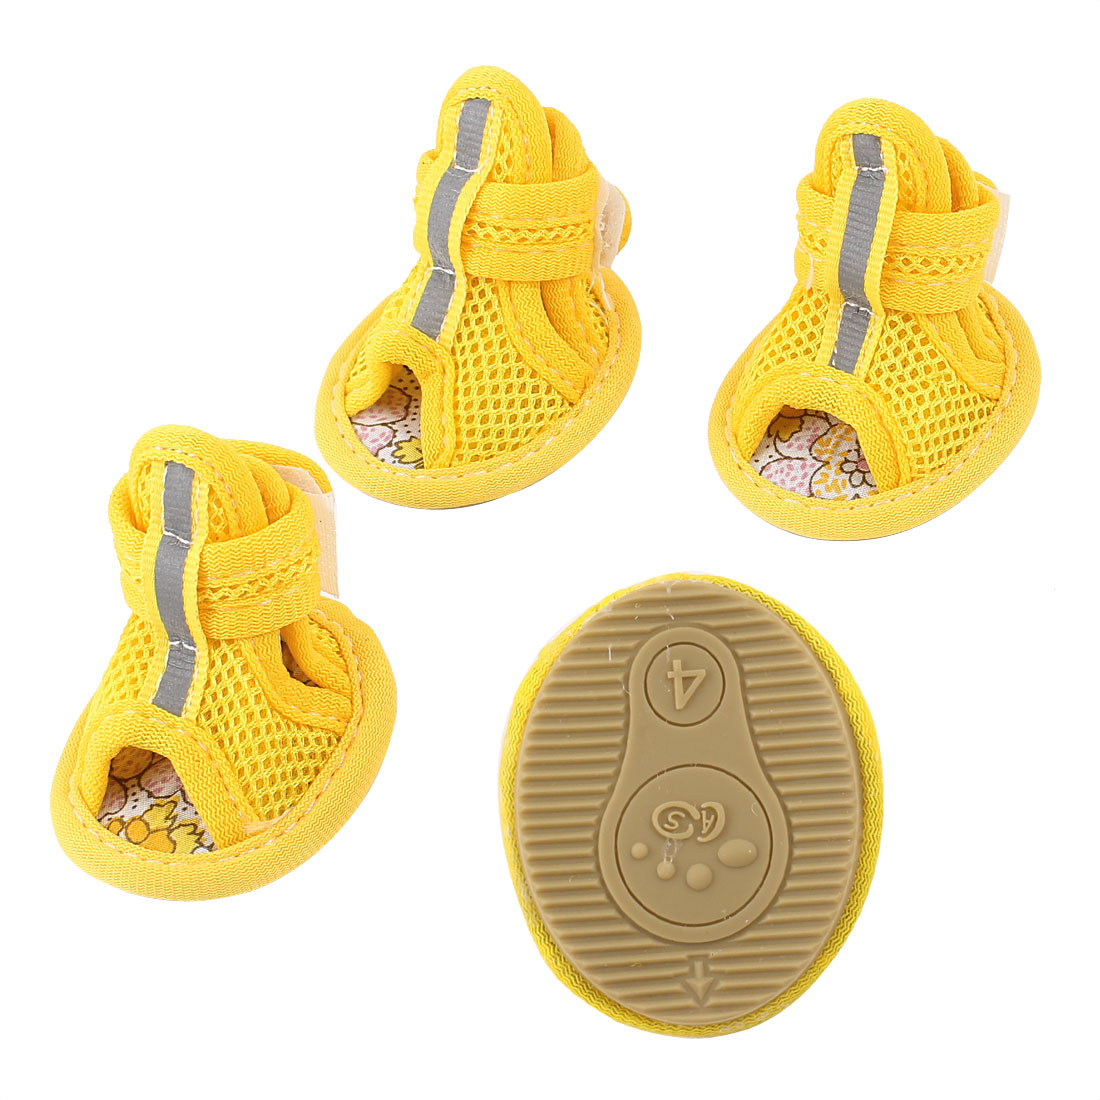 2 Pair Hook Look Closure Pet Poodle Puppy Mesh Shoes Boots Booties Yellow Size XS